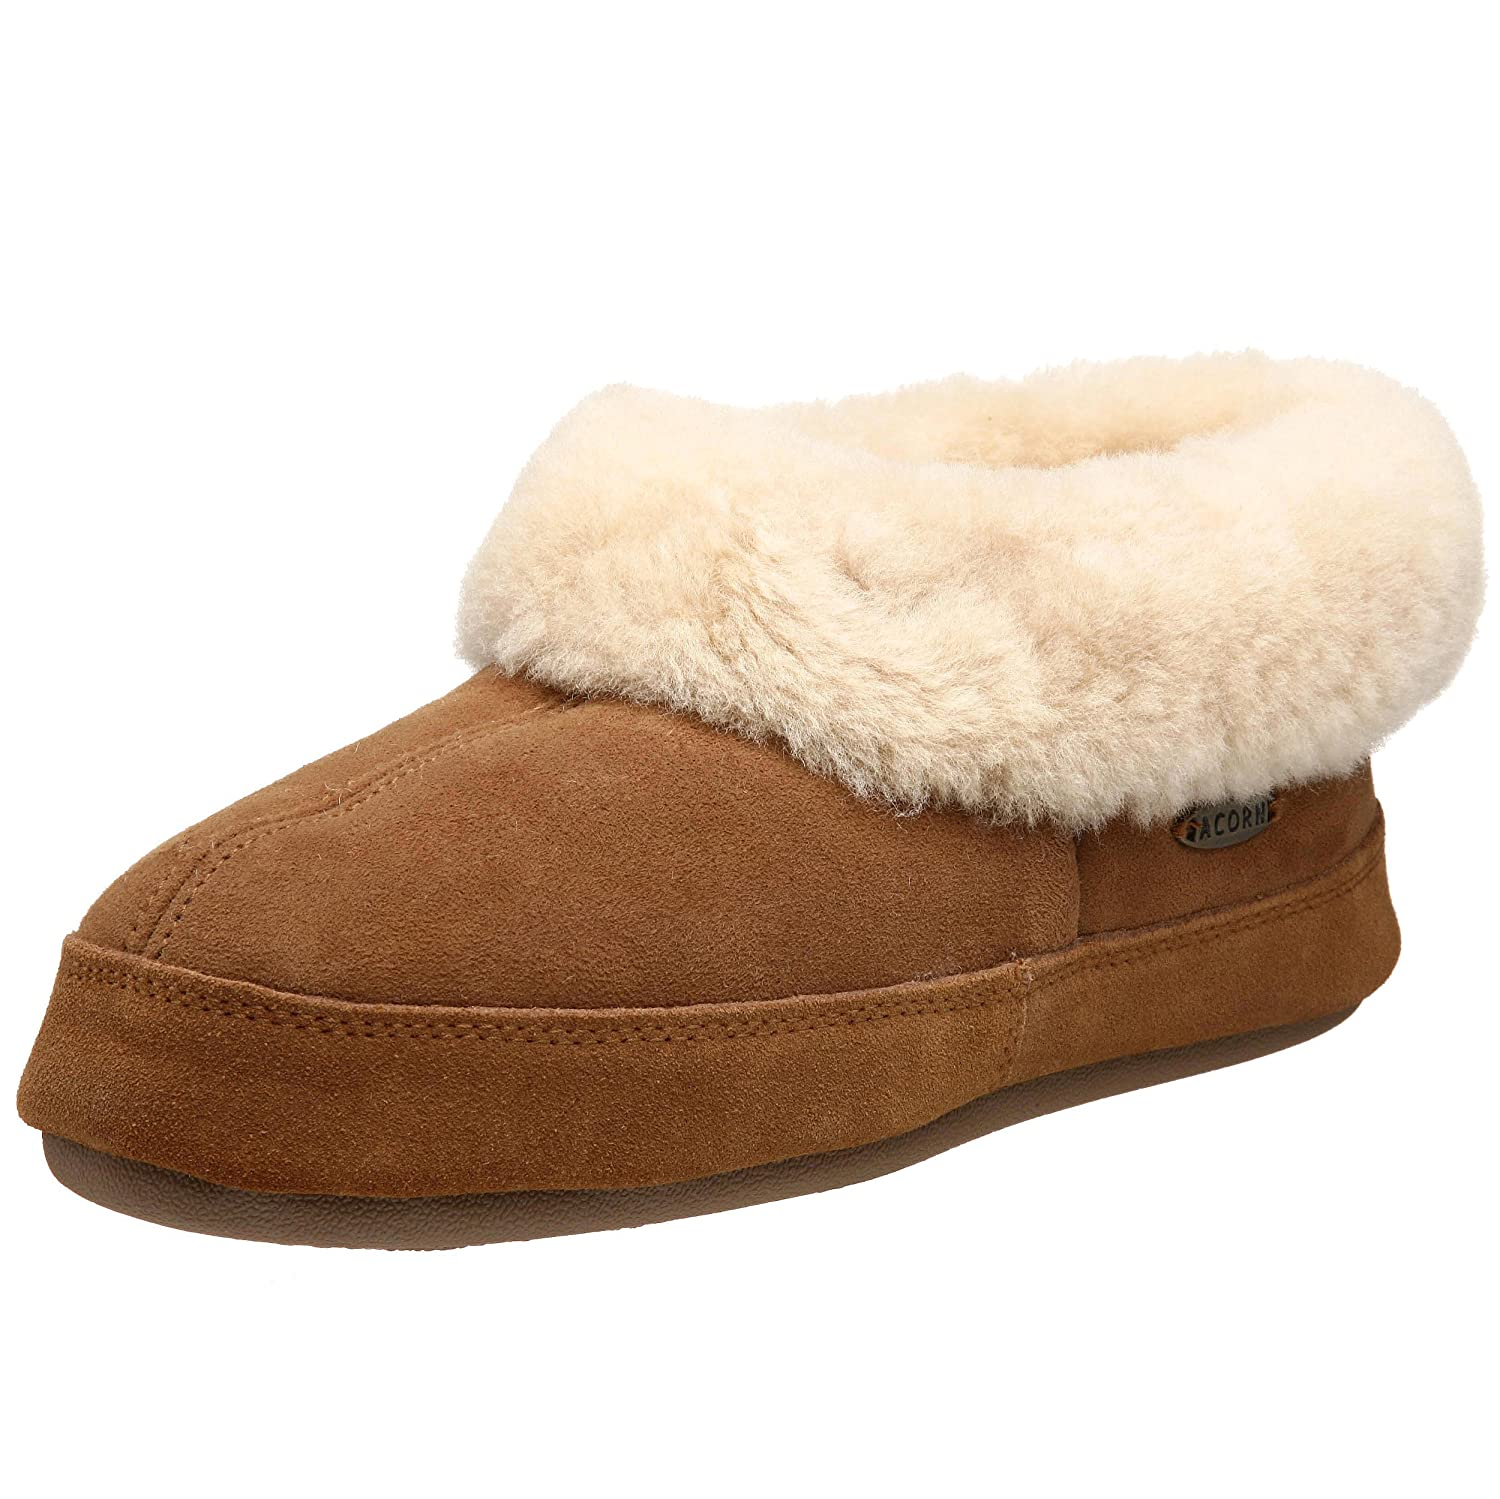 Walnut Acorn Women's Oh Ewe II Slipper